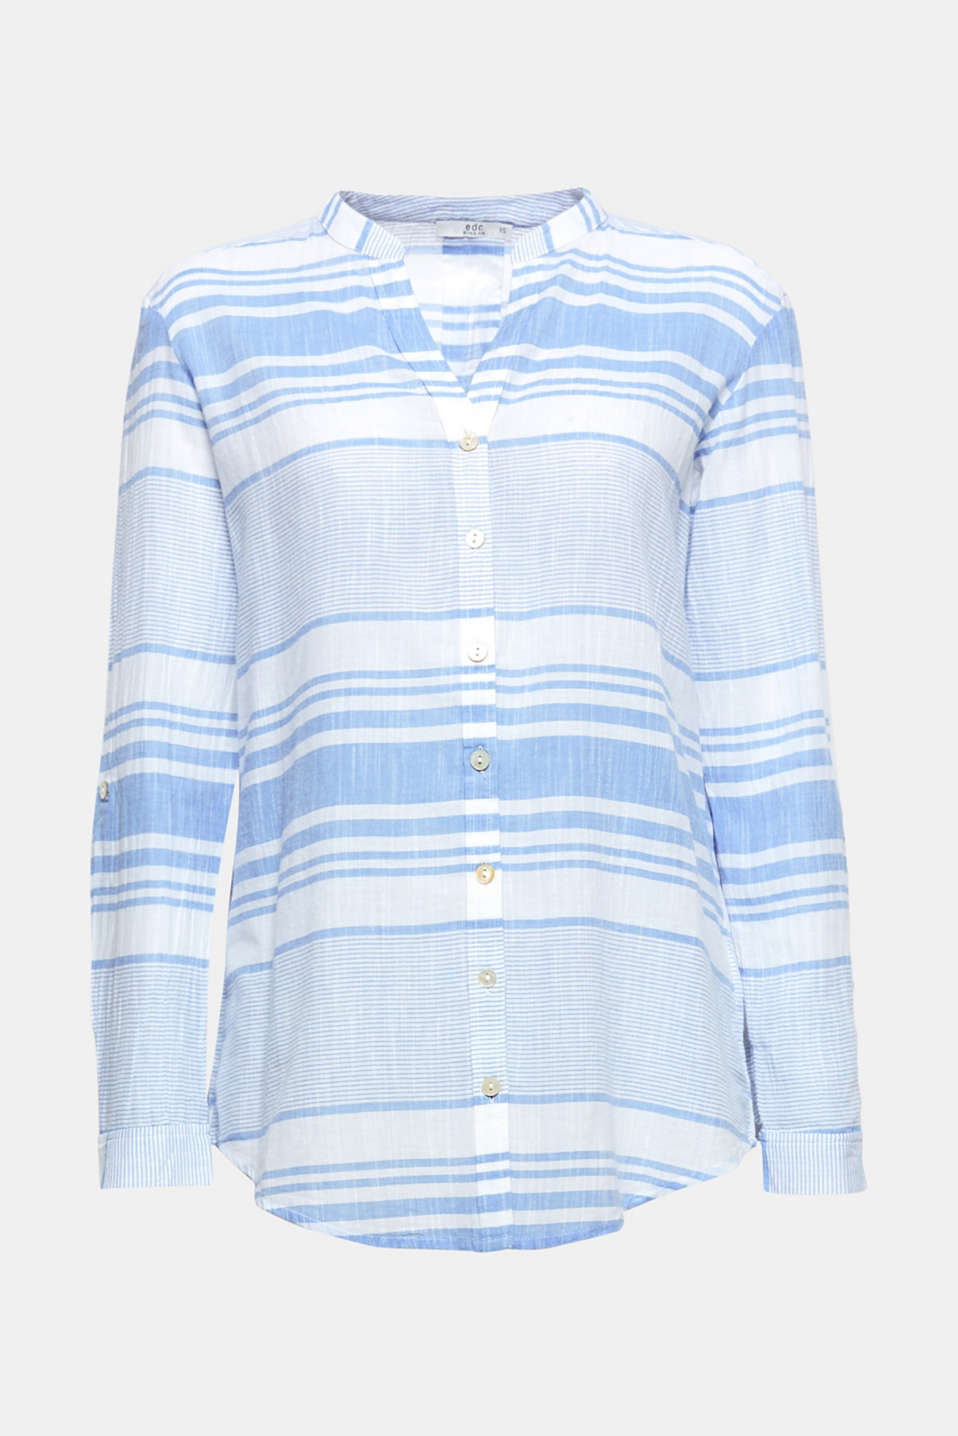 Airy, lightweight cotton fabric, fresh stripes and casual turn-ups make this blouse an ideal partner to relaxed summer looks.